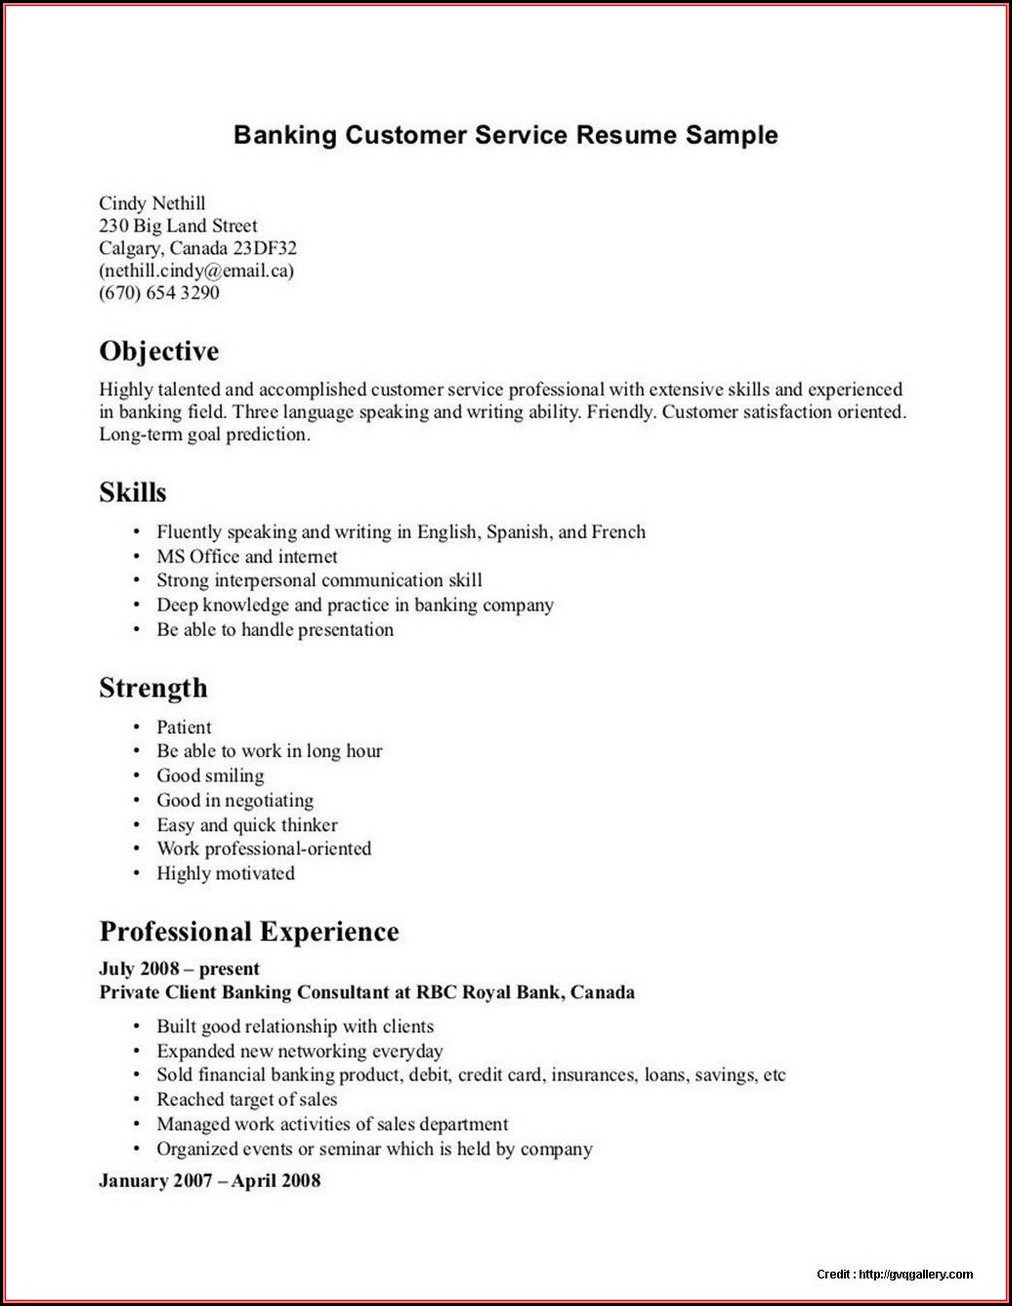 Resume Writing Services Chicago Il